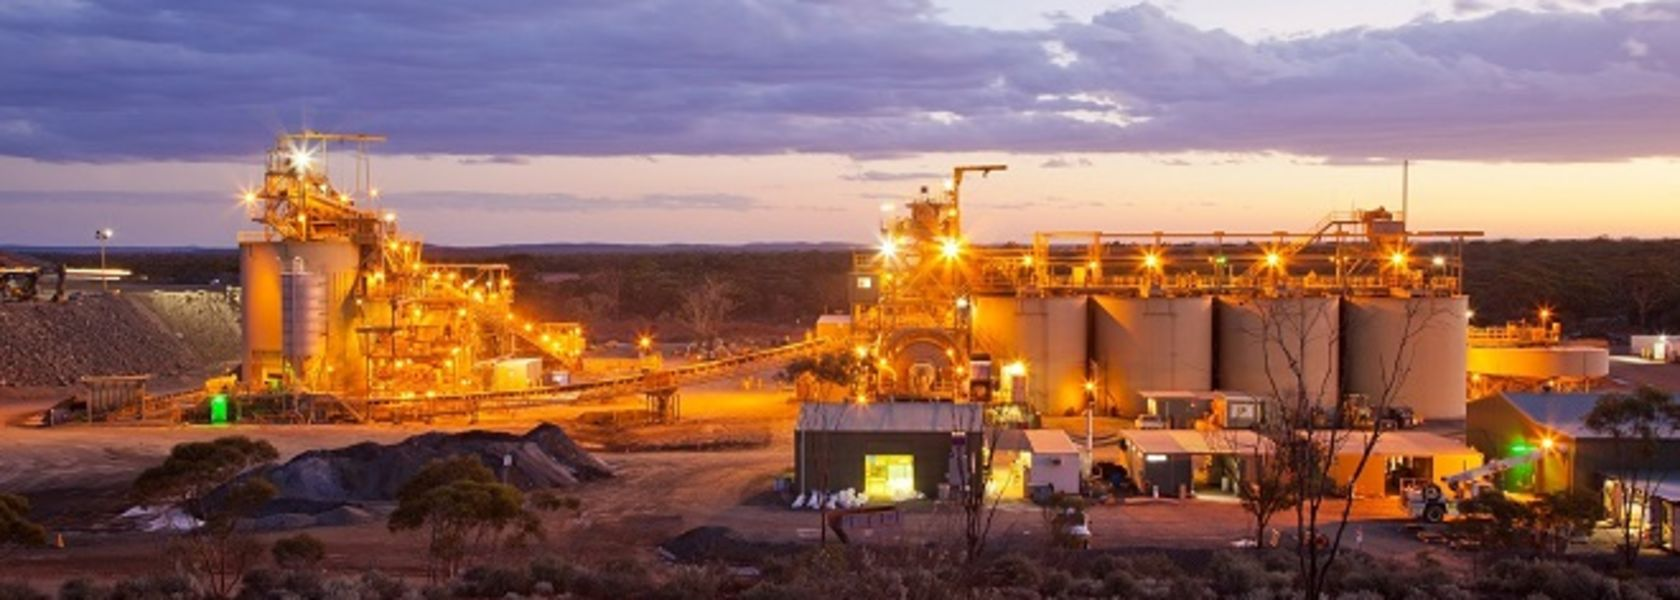 Rnc Launches Raising To Advance Wa Gold Miningnews Net